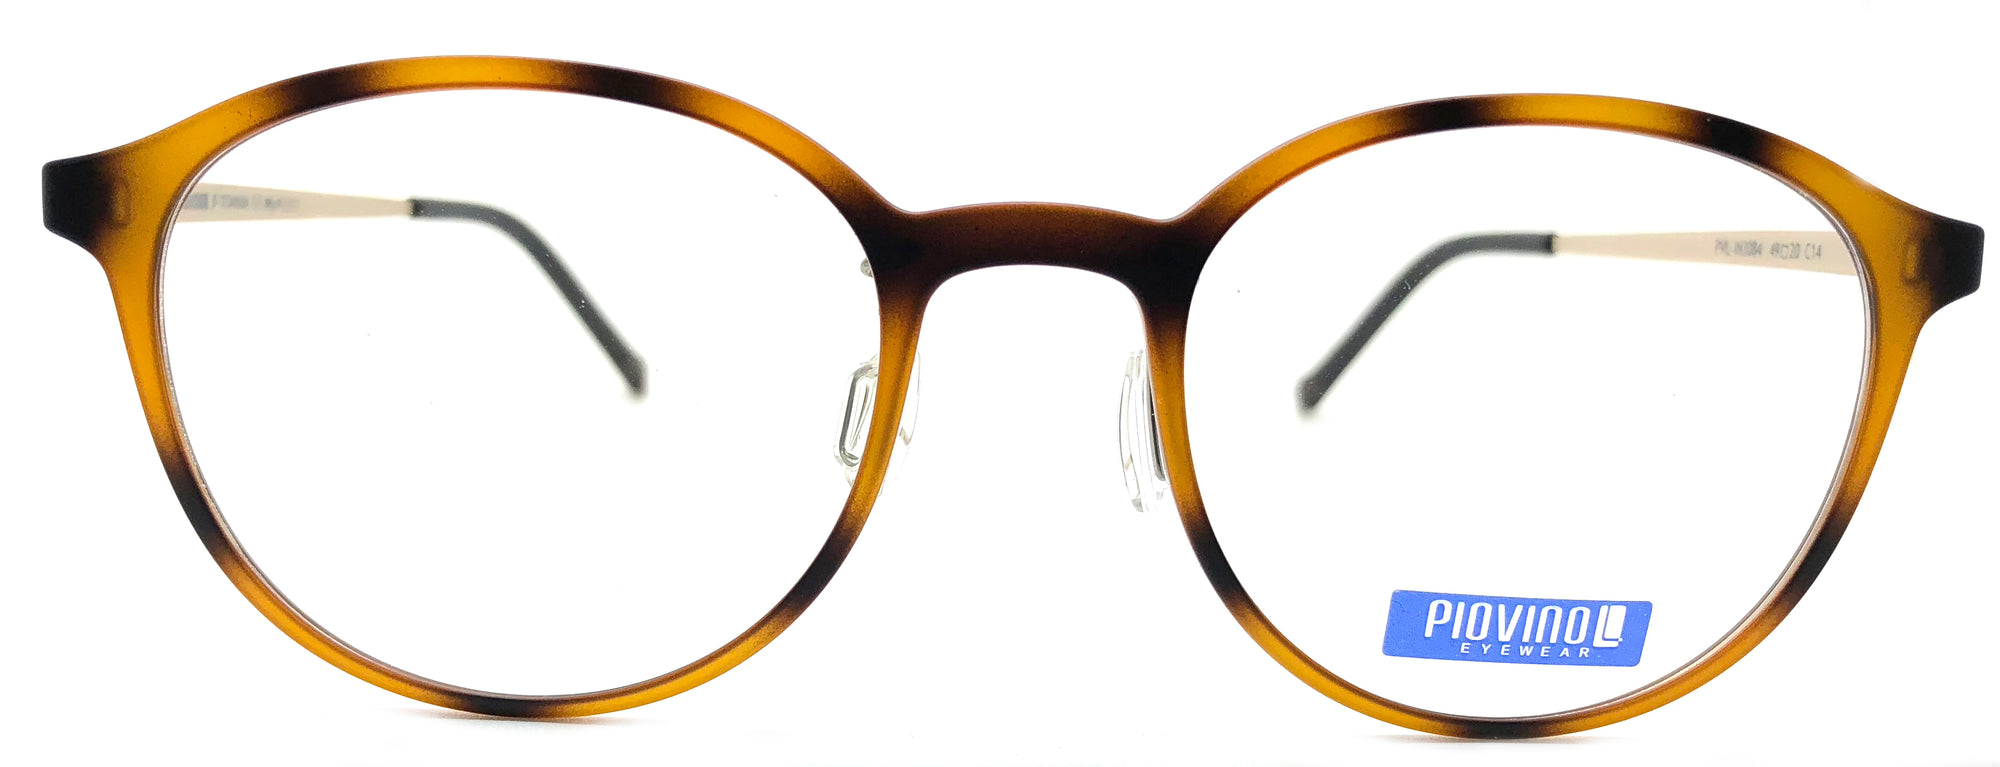 Piovino Eyeglasses Prescription Frame 3084 C14 Rxable Titanium Frame